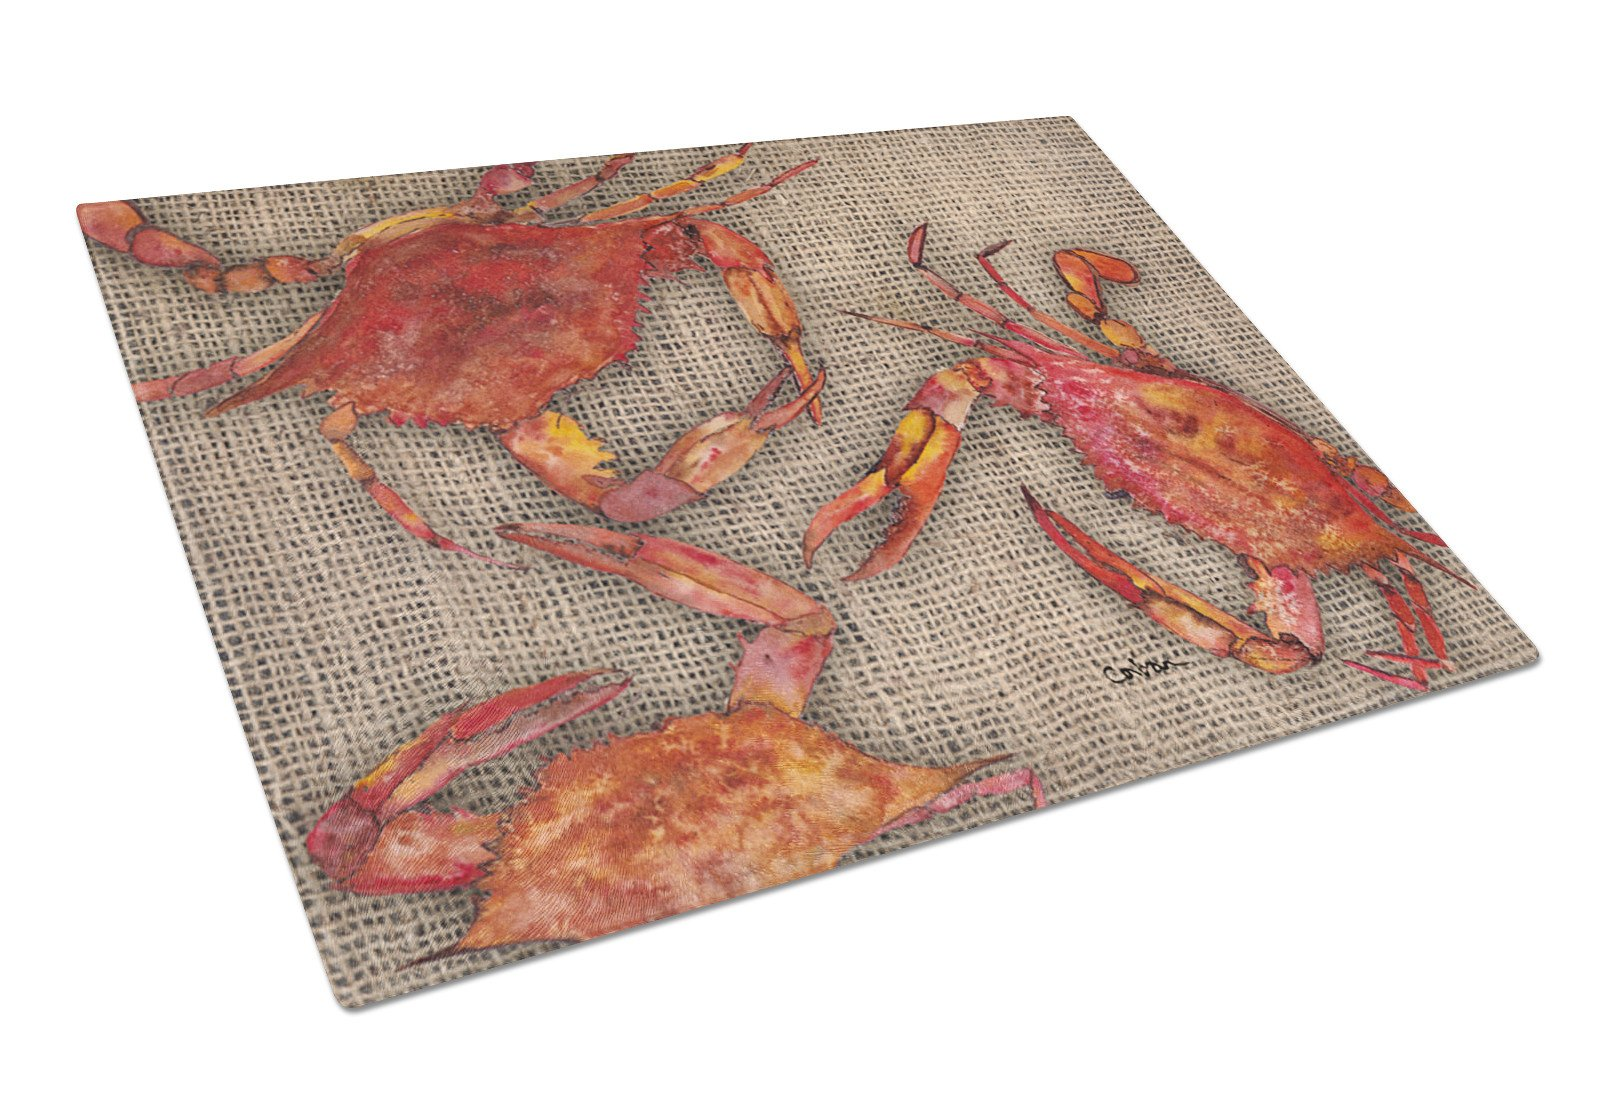 Cooked Crabs on Faux Burlap Glass Cutting Board Large by Caroline's Treasures